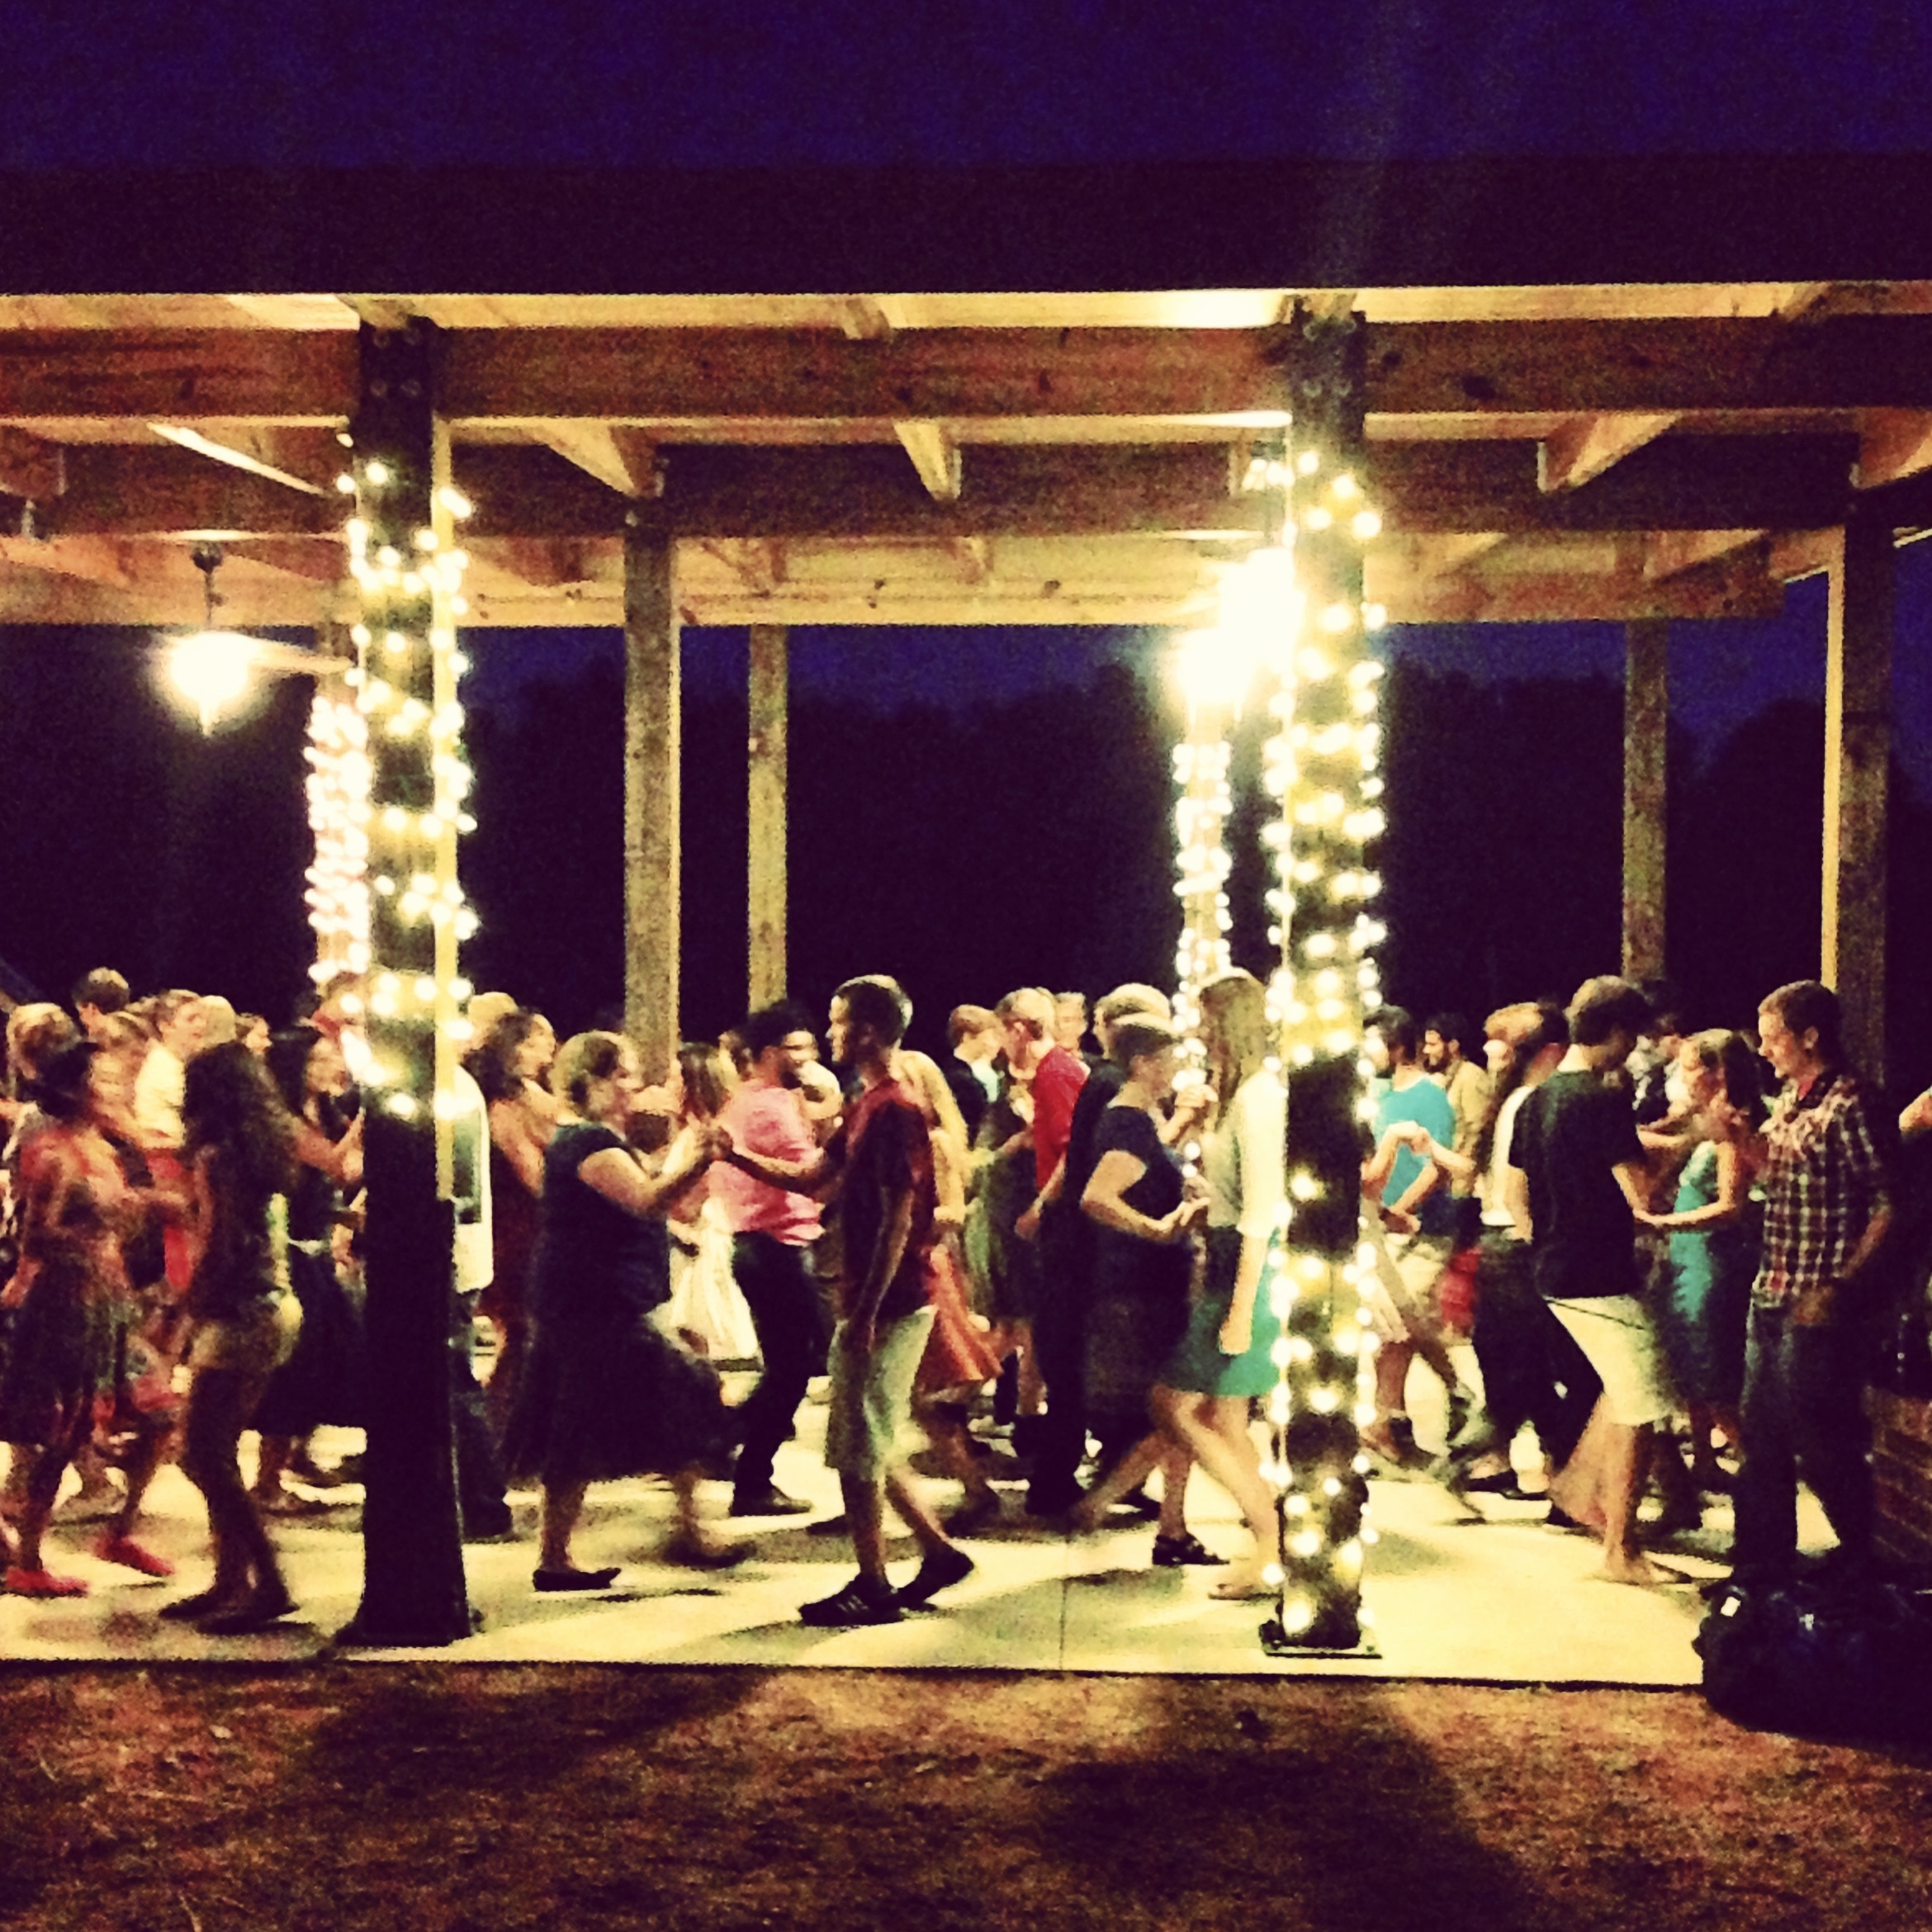 More than 150 students and community members danced under the stars in September 2013 to celebrate our new pavilion.